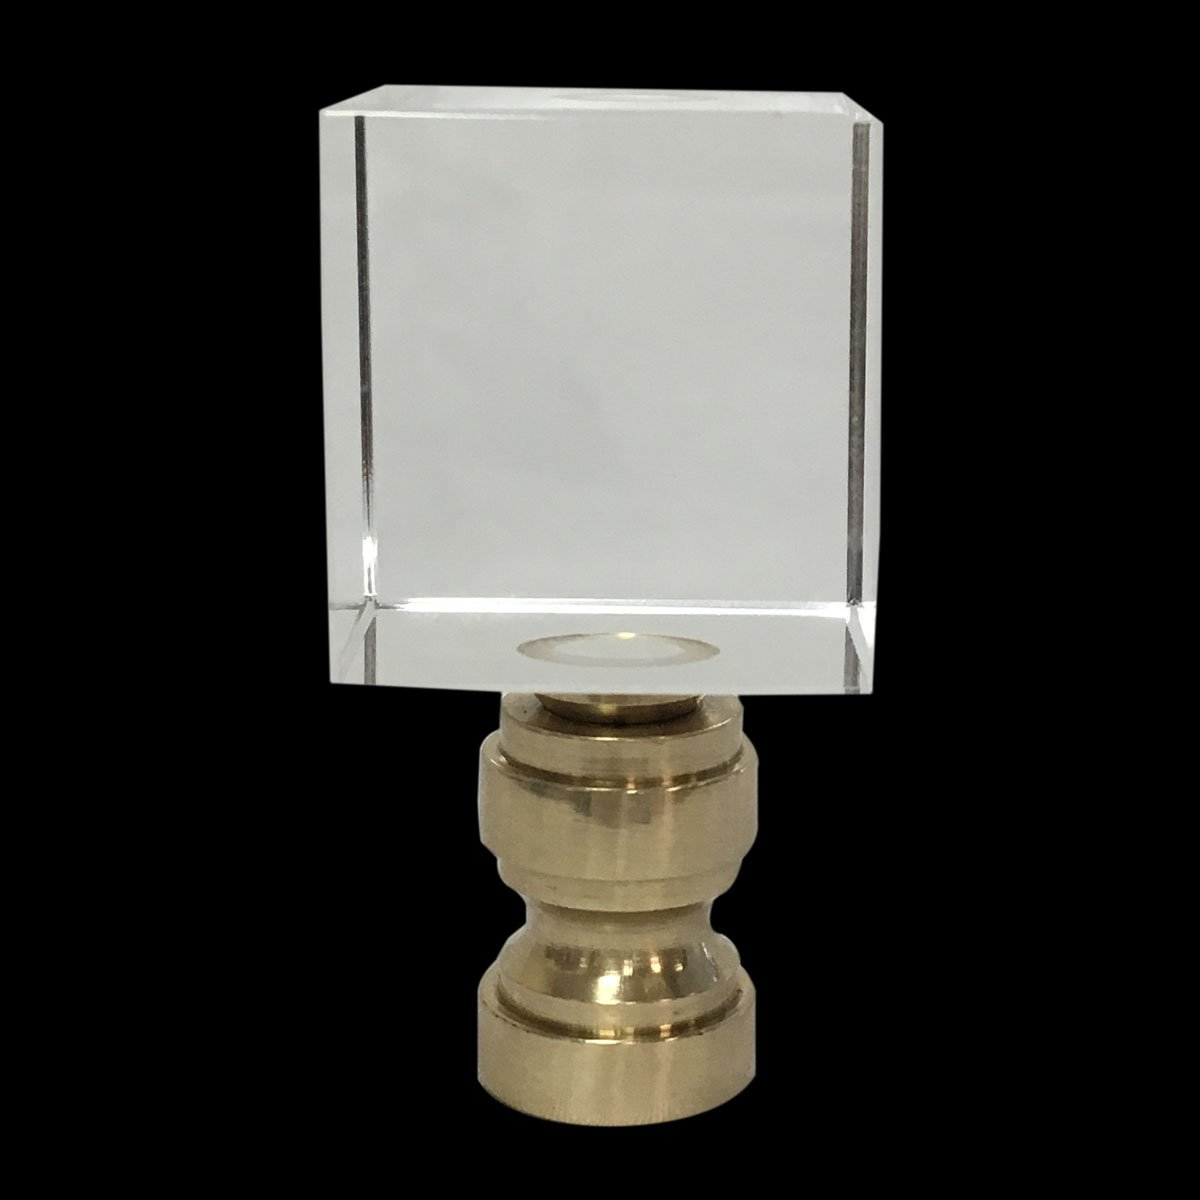 Royal Designs Clear Cube K9 Crystal Lamp Finial with Polished Brass Base - Set of 2 by Royal Designs, Inc (Image #2)